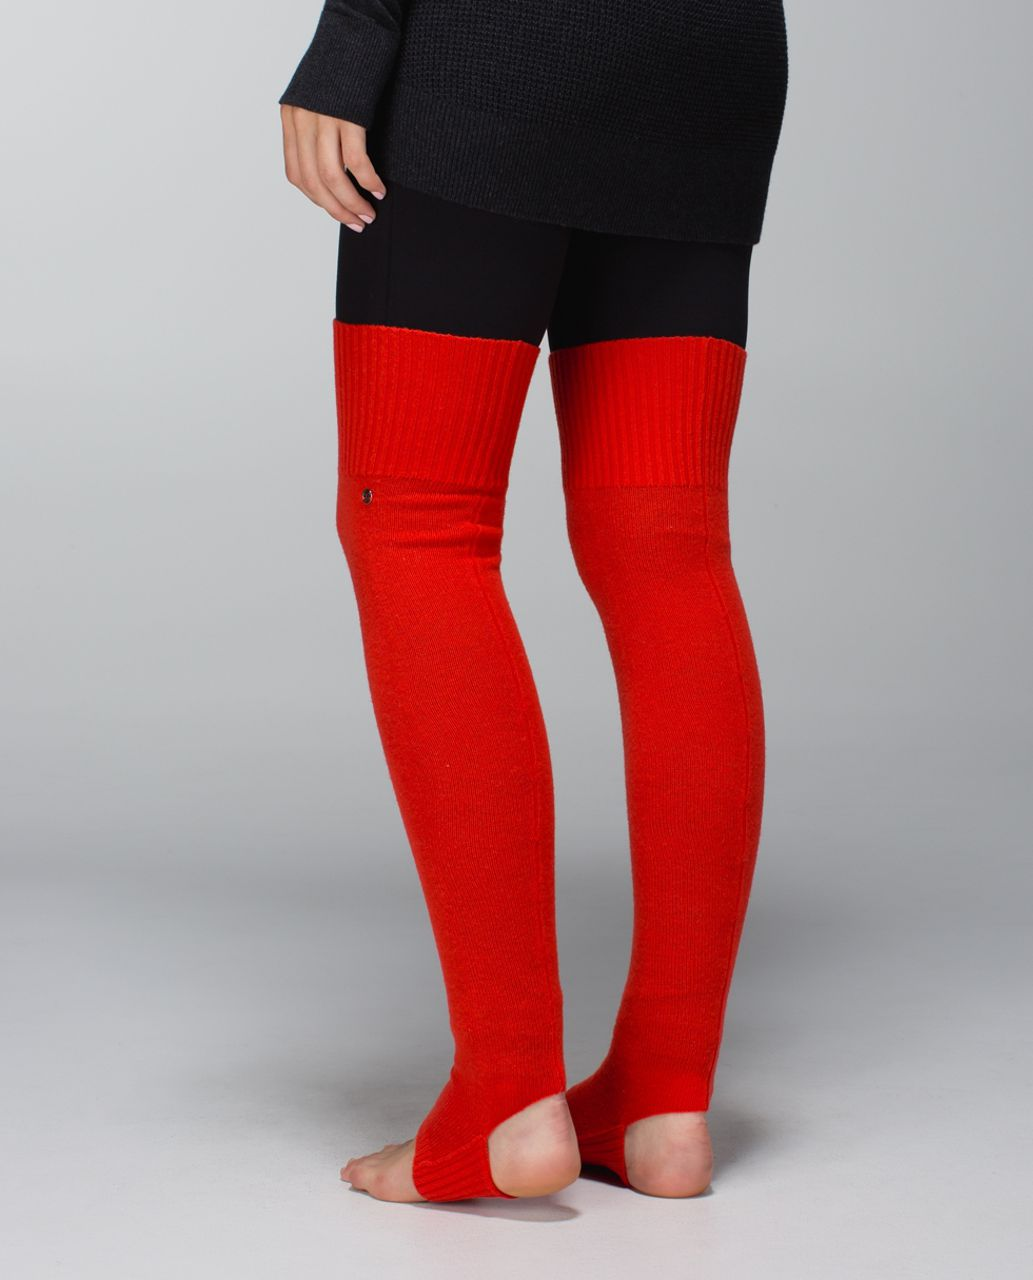 Lululemon Evolution Leg Warmers - Flaming Tomato